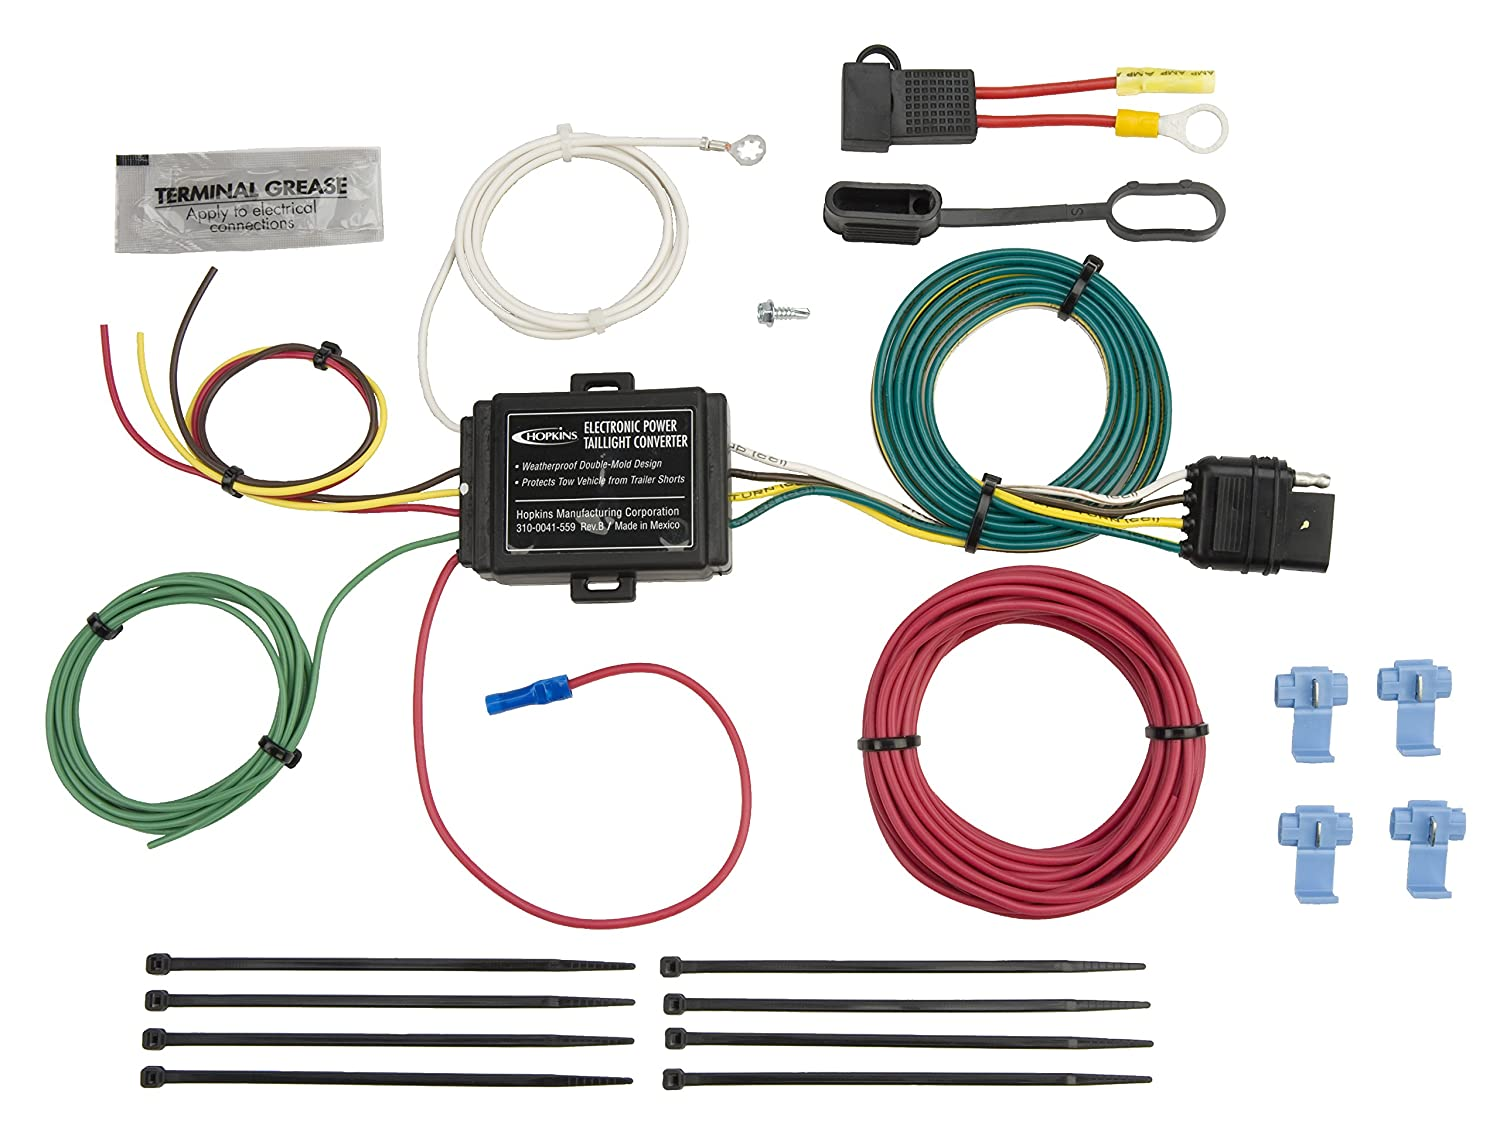 Hopkins 46255 Power Taillight Converter Automotive Trailer Wiring 5 Wire Diagram